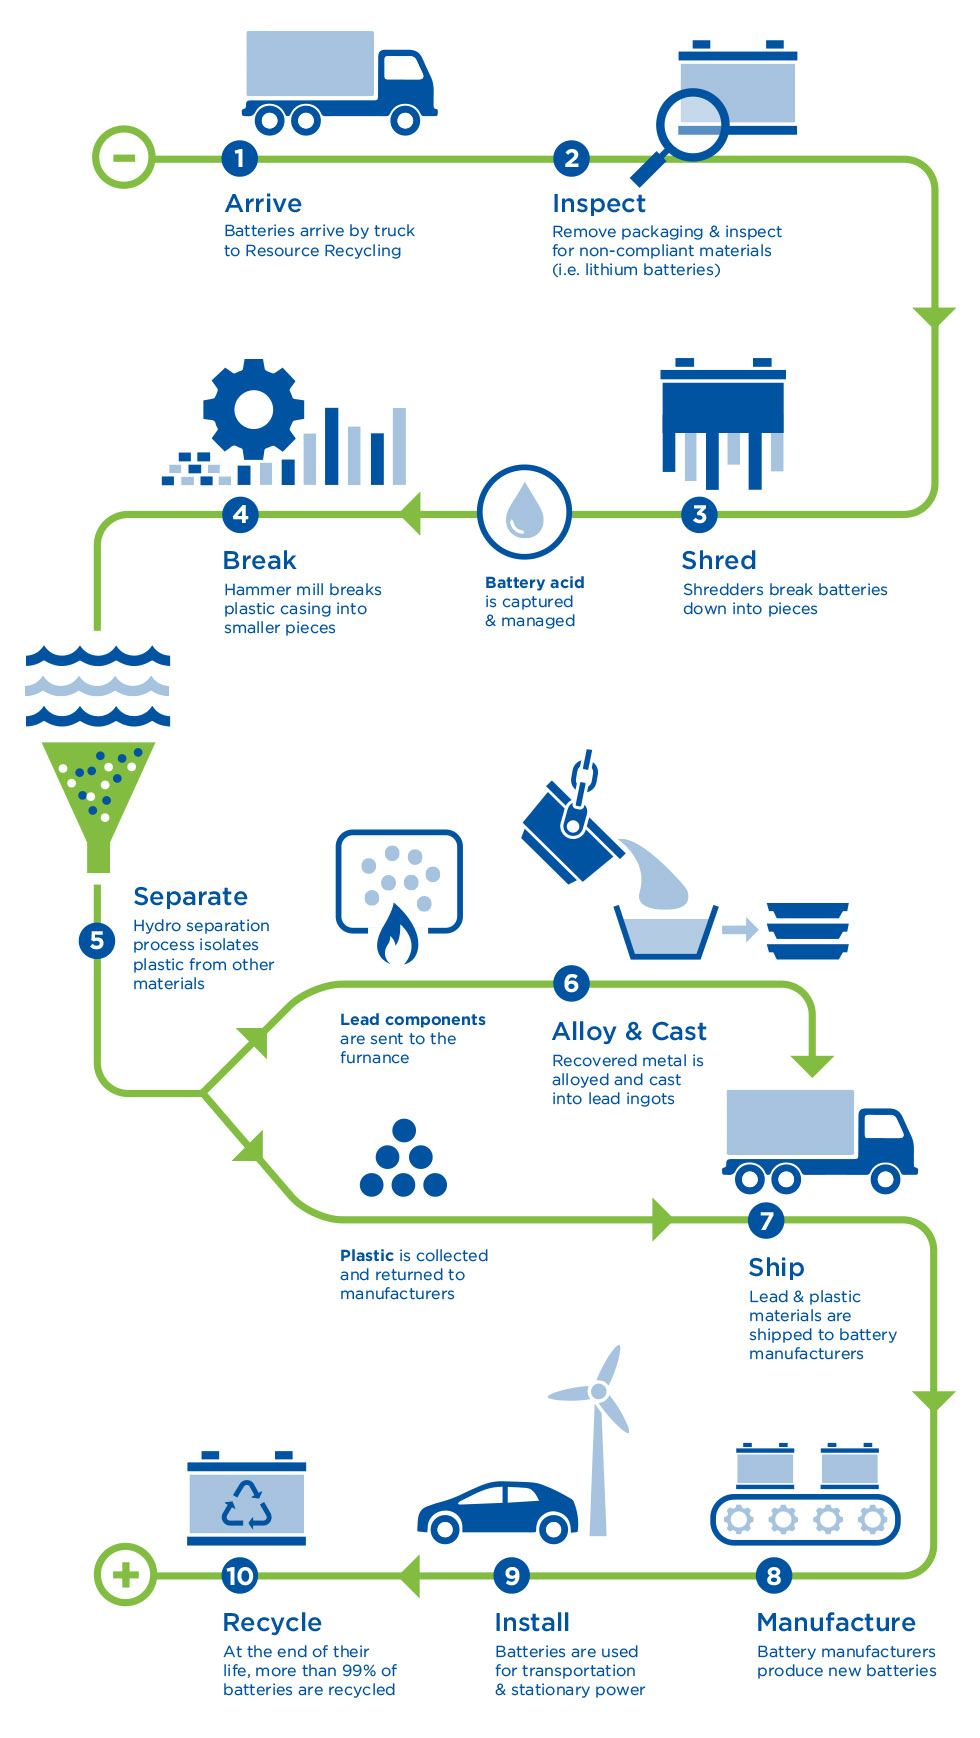 Our Lead Battery Recycling Process